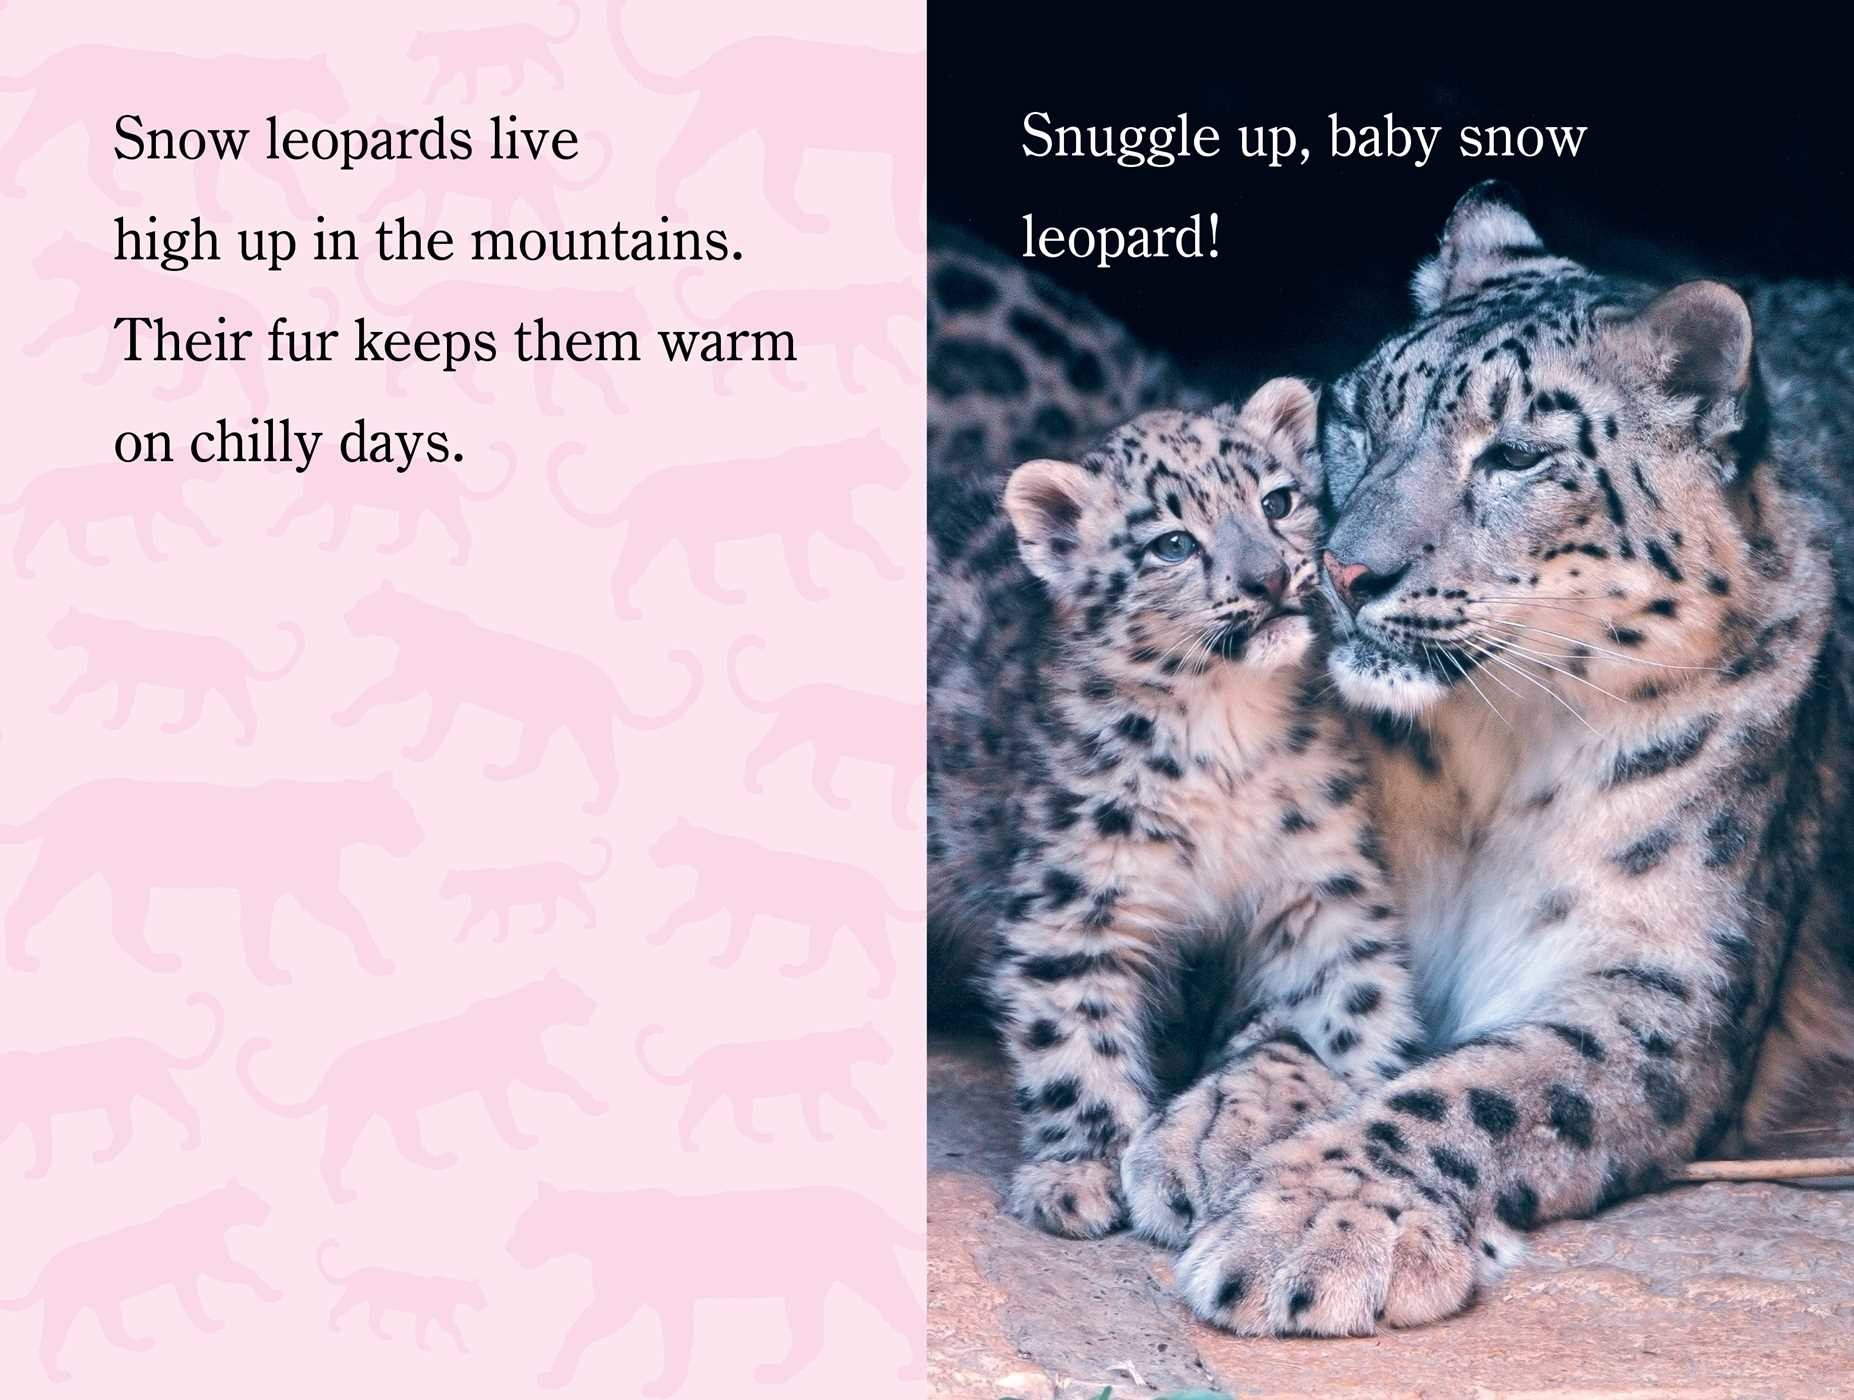 Snuggle up zooborns 9781481431002.in04